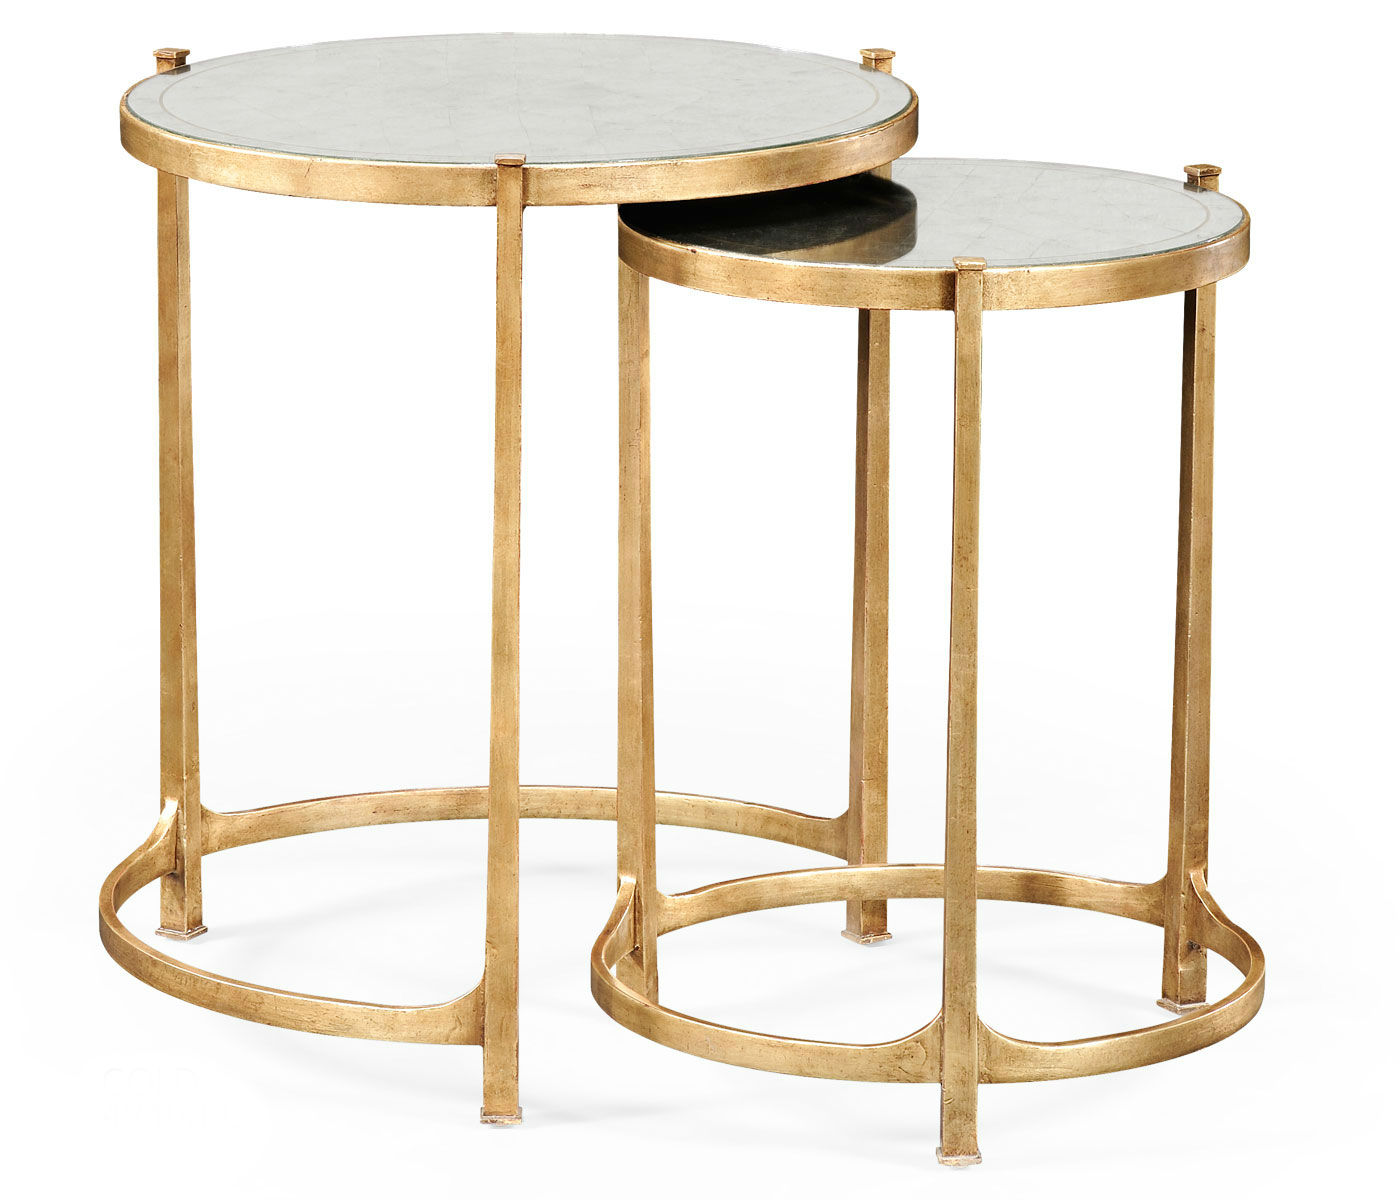 nesting tables gold side table accent end elegant tall antiqued mirrored gilt partner console coffee available hospitality small with marble top study lamp mango wood ethan allen